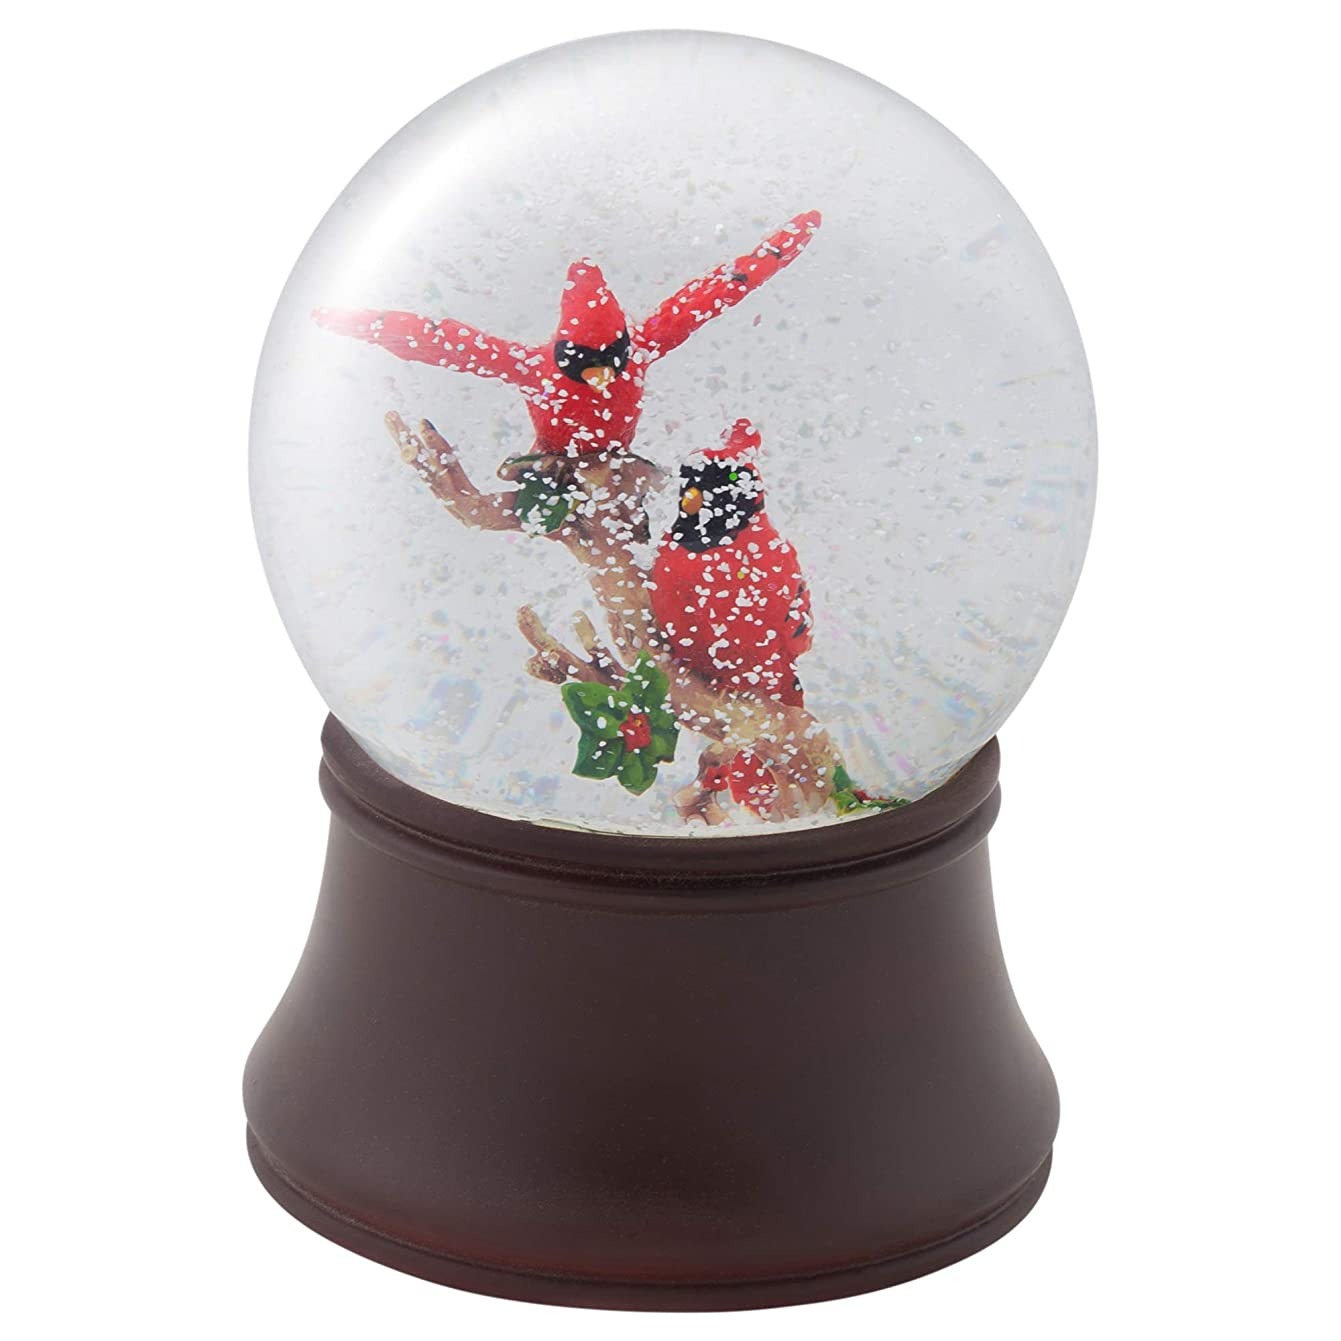 Elanze Designs Red Cardinal Friends Musical Figurine 120MM Water Globe Plays Tune Wish You A Merry Christmas